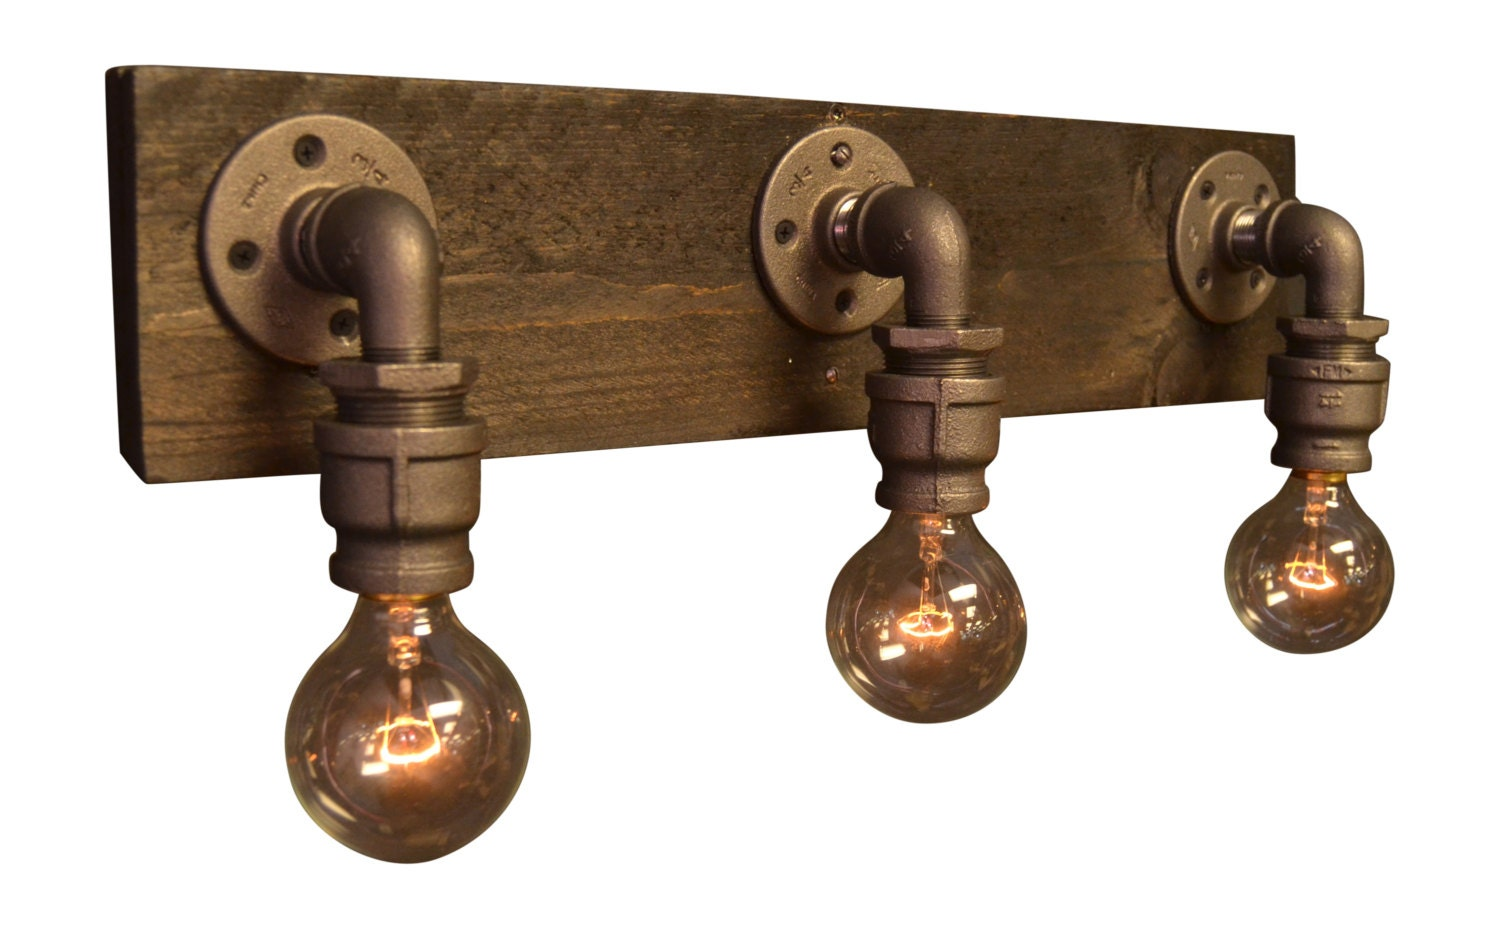 reclaimed industrial lighting. zoom reclaimed industrial lighting